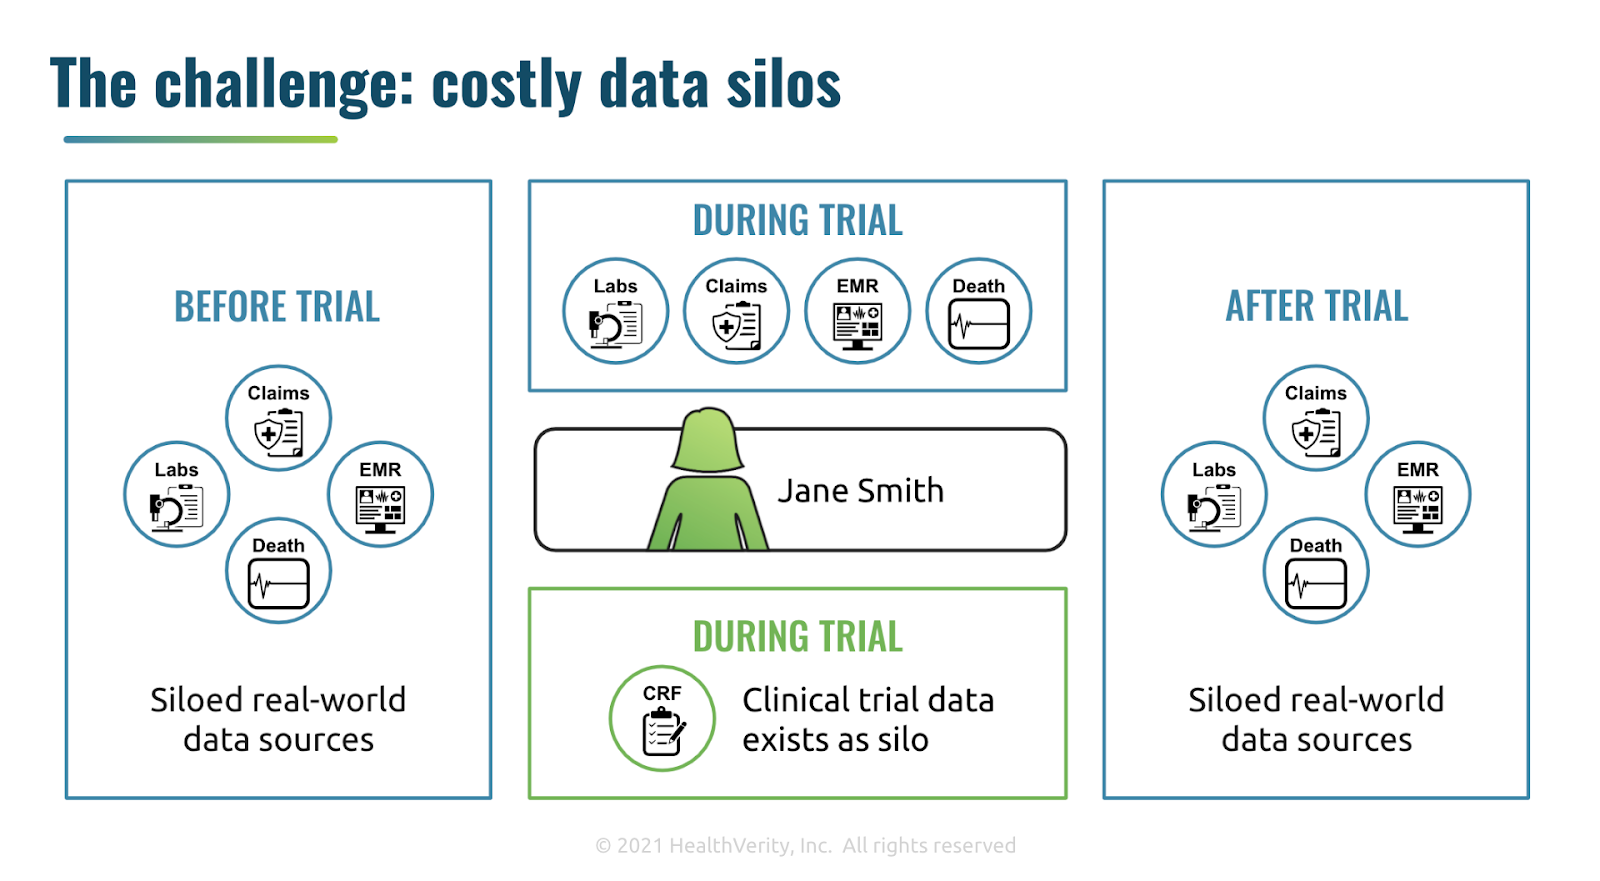 The challenge: costly data silos